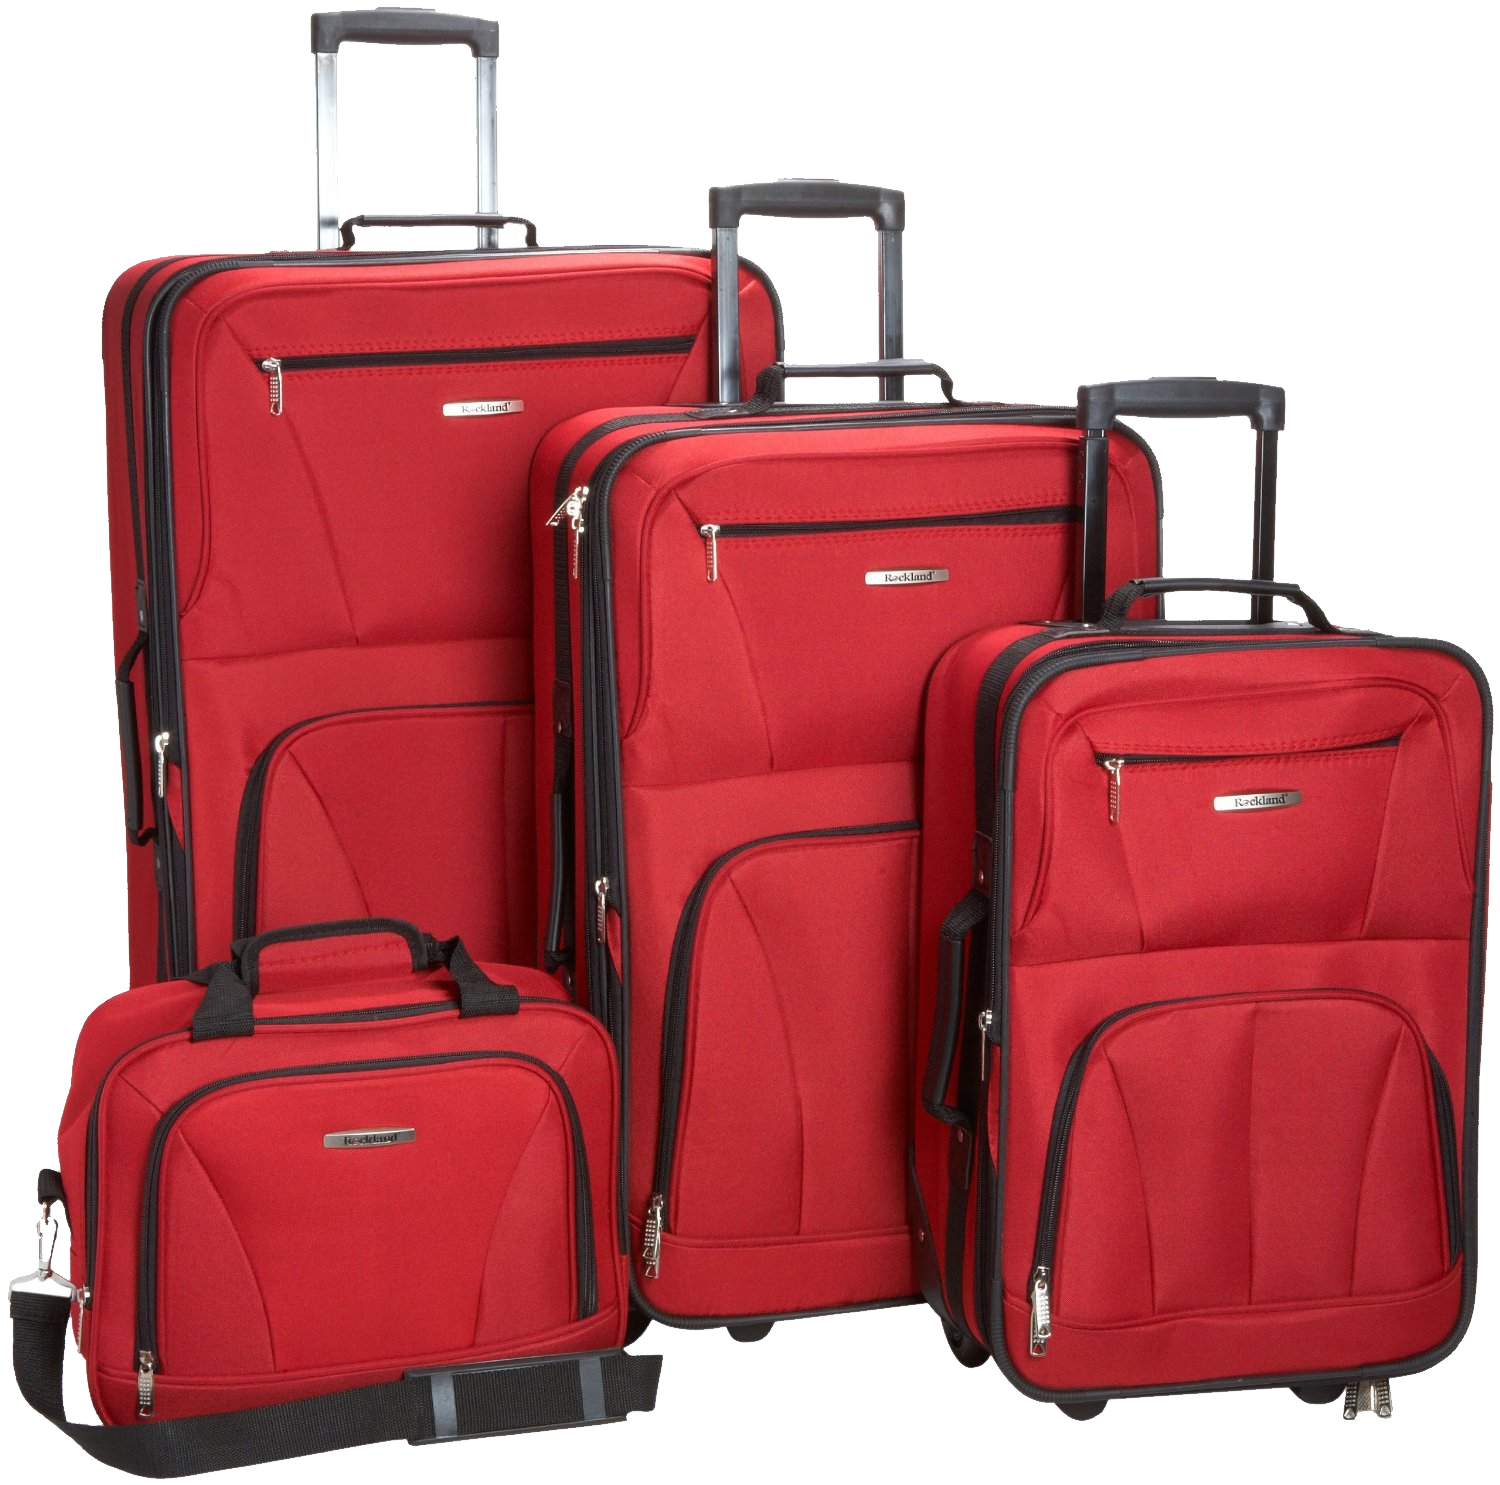 red luggage four suitcase png image purepng transparent #35058